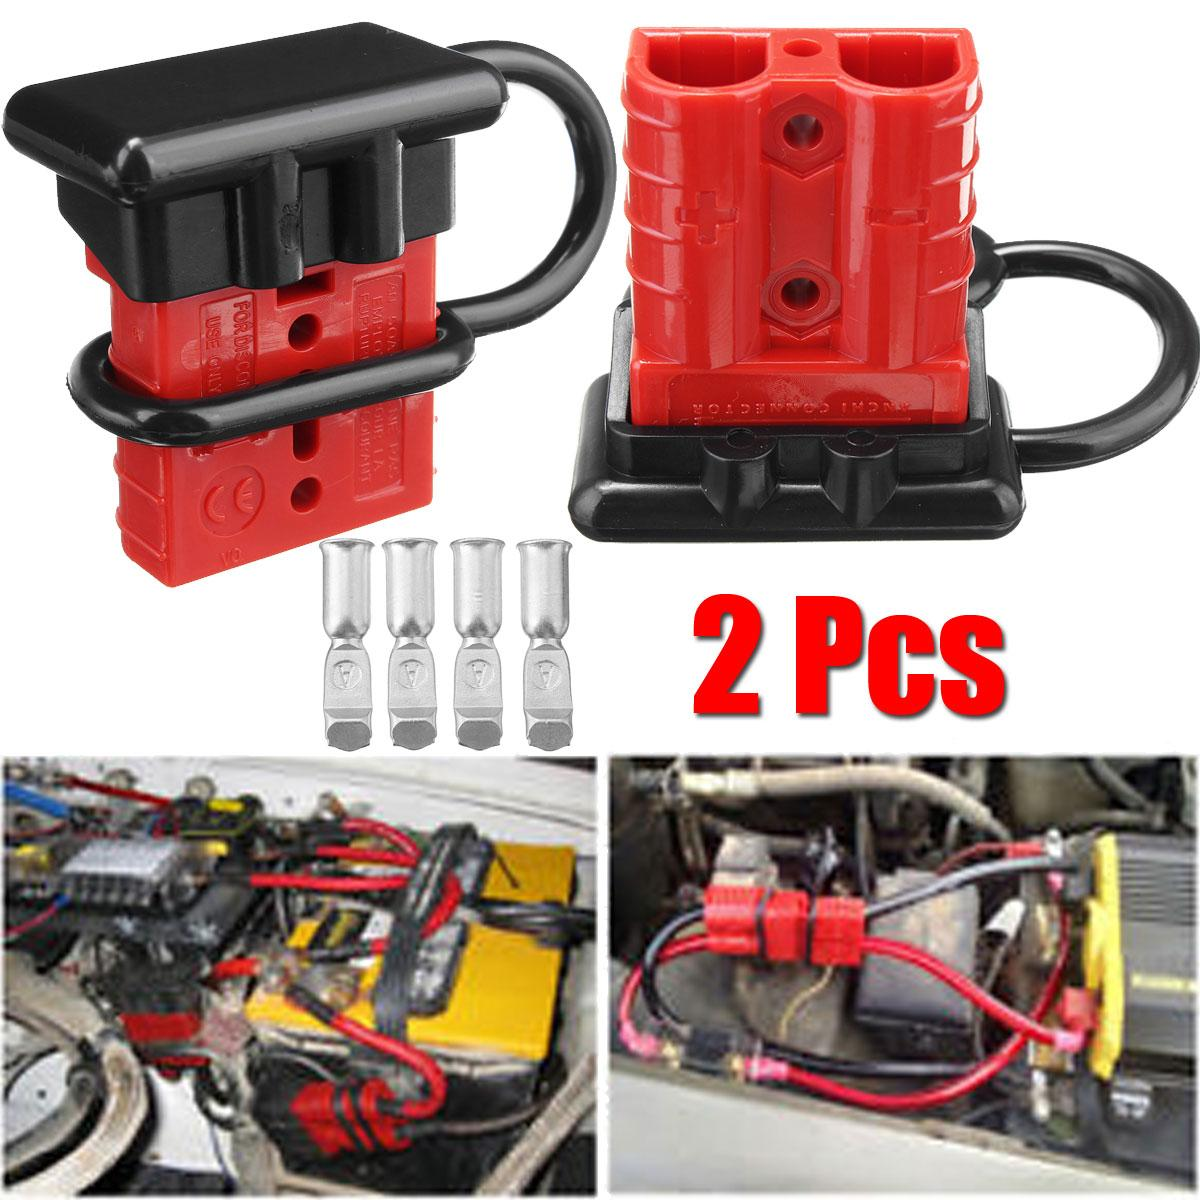 Electrical Equipment For Sale Electricals Prices Brands Review 220v 50a Plug Wiring Circuitry Parts